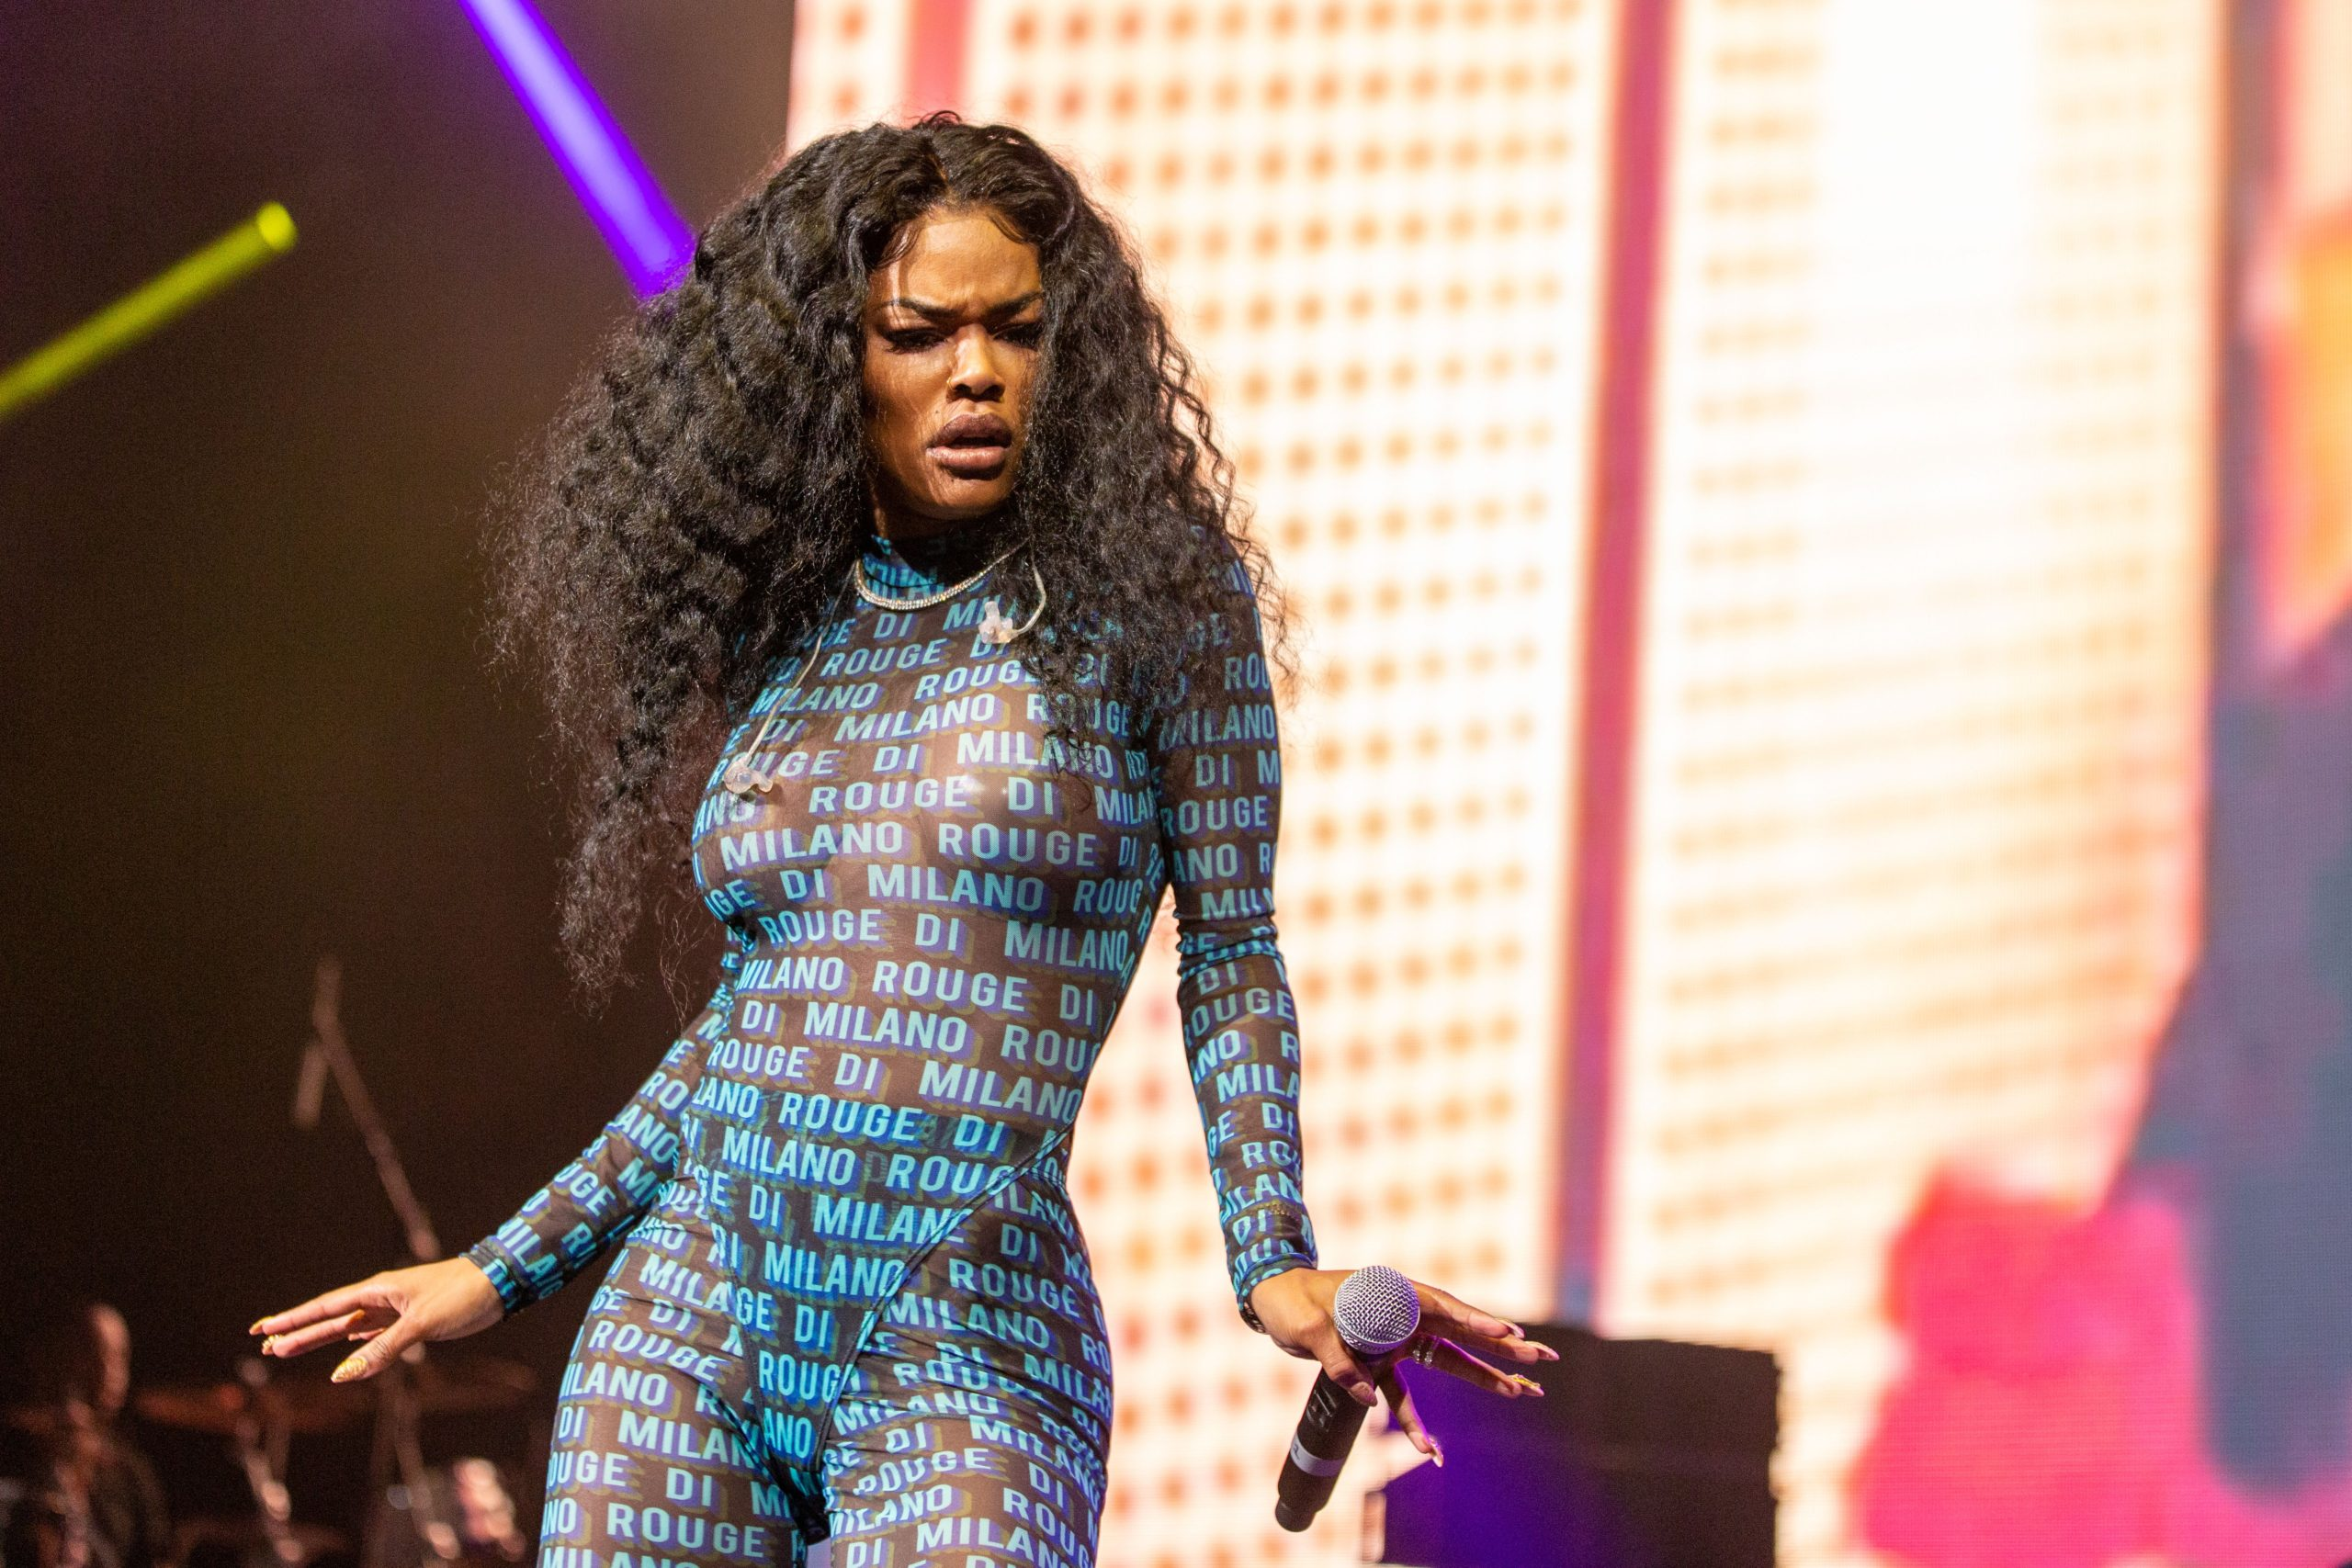 Teyana Taylor Announces Date For Farewell Tour Ahead of Retirement